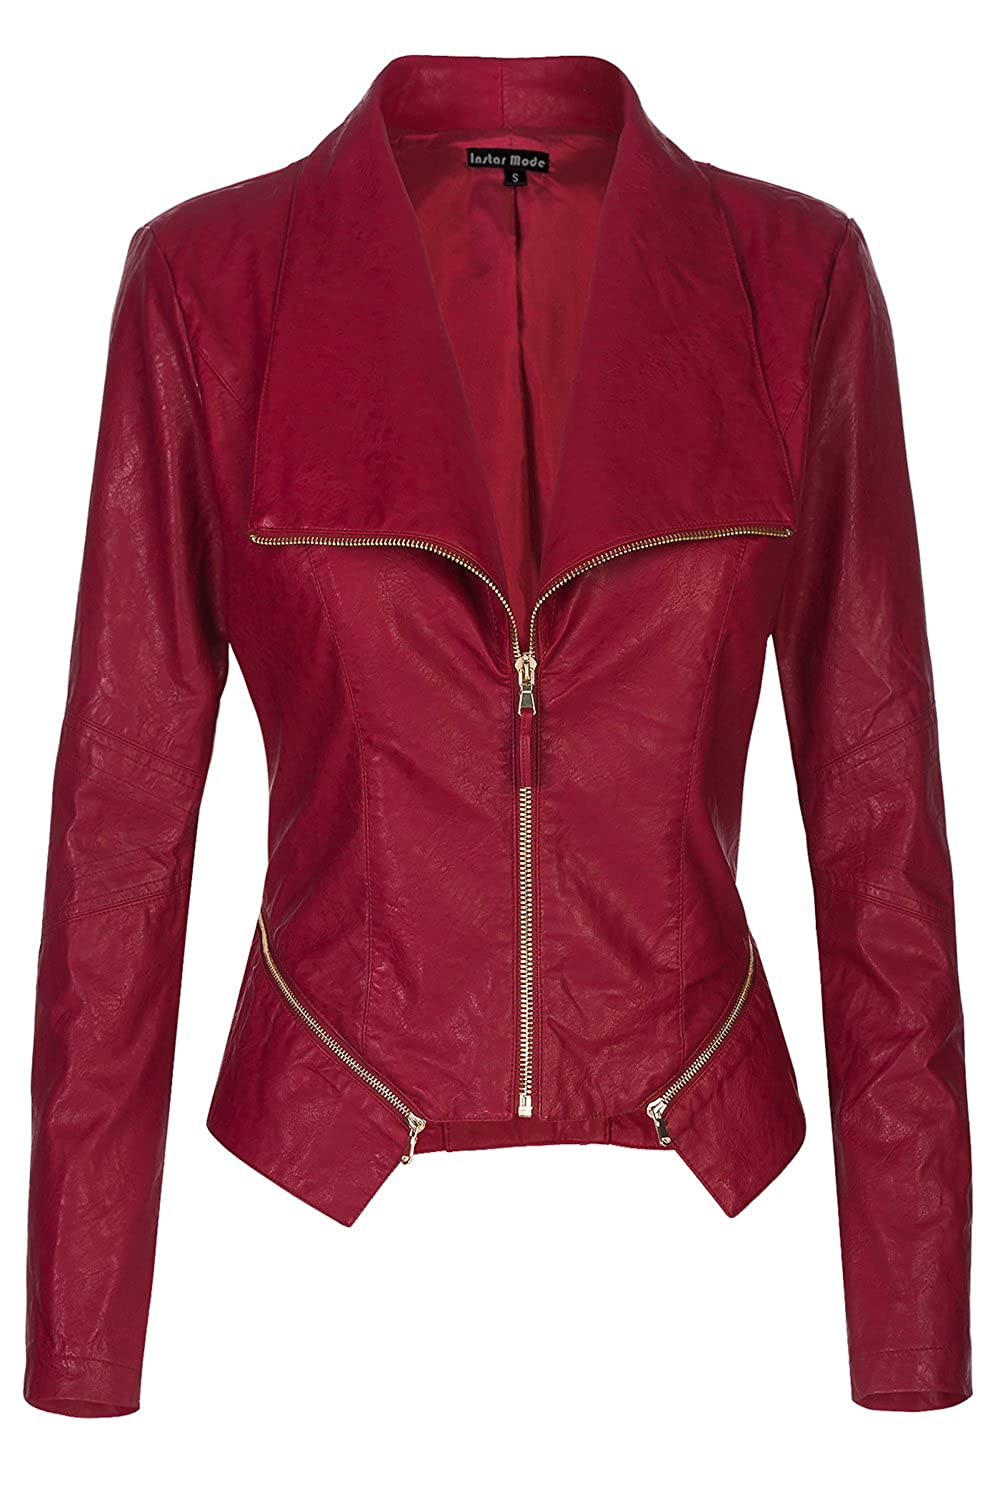 Jk61012 Burgundy Instar Mode Women's Long Sleeve Zipper Closure Moto Biker Faux Leather Jacket